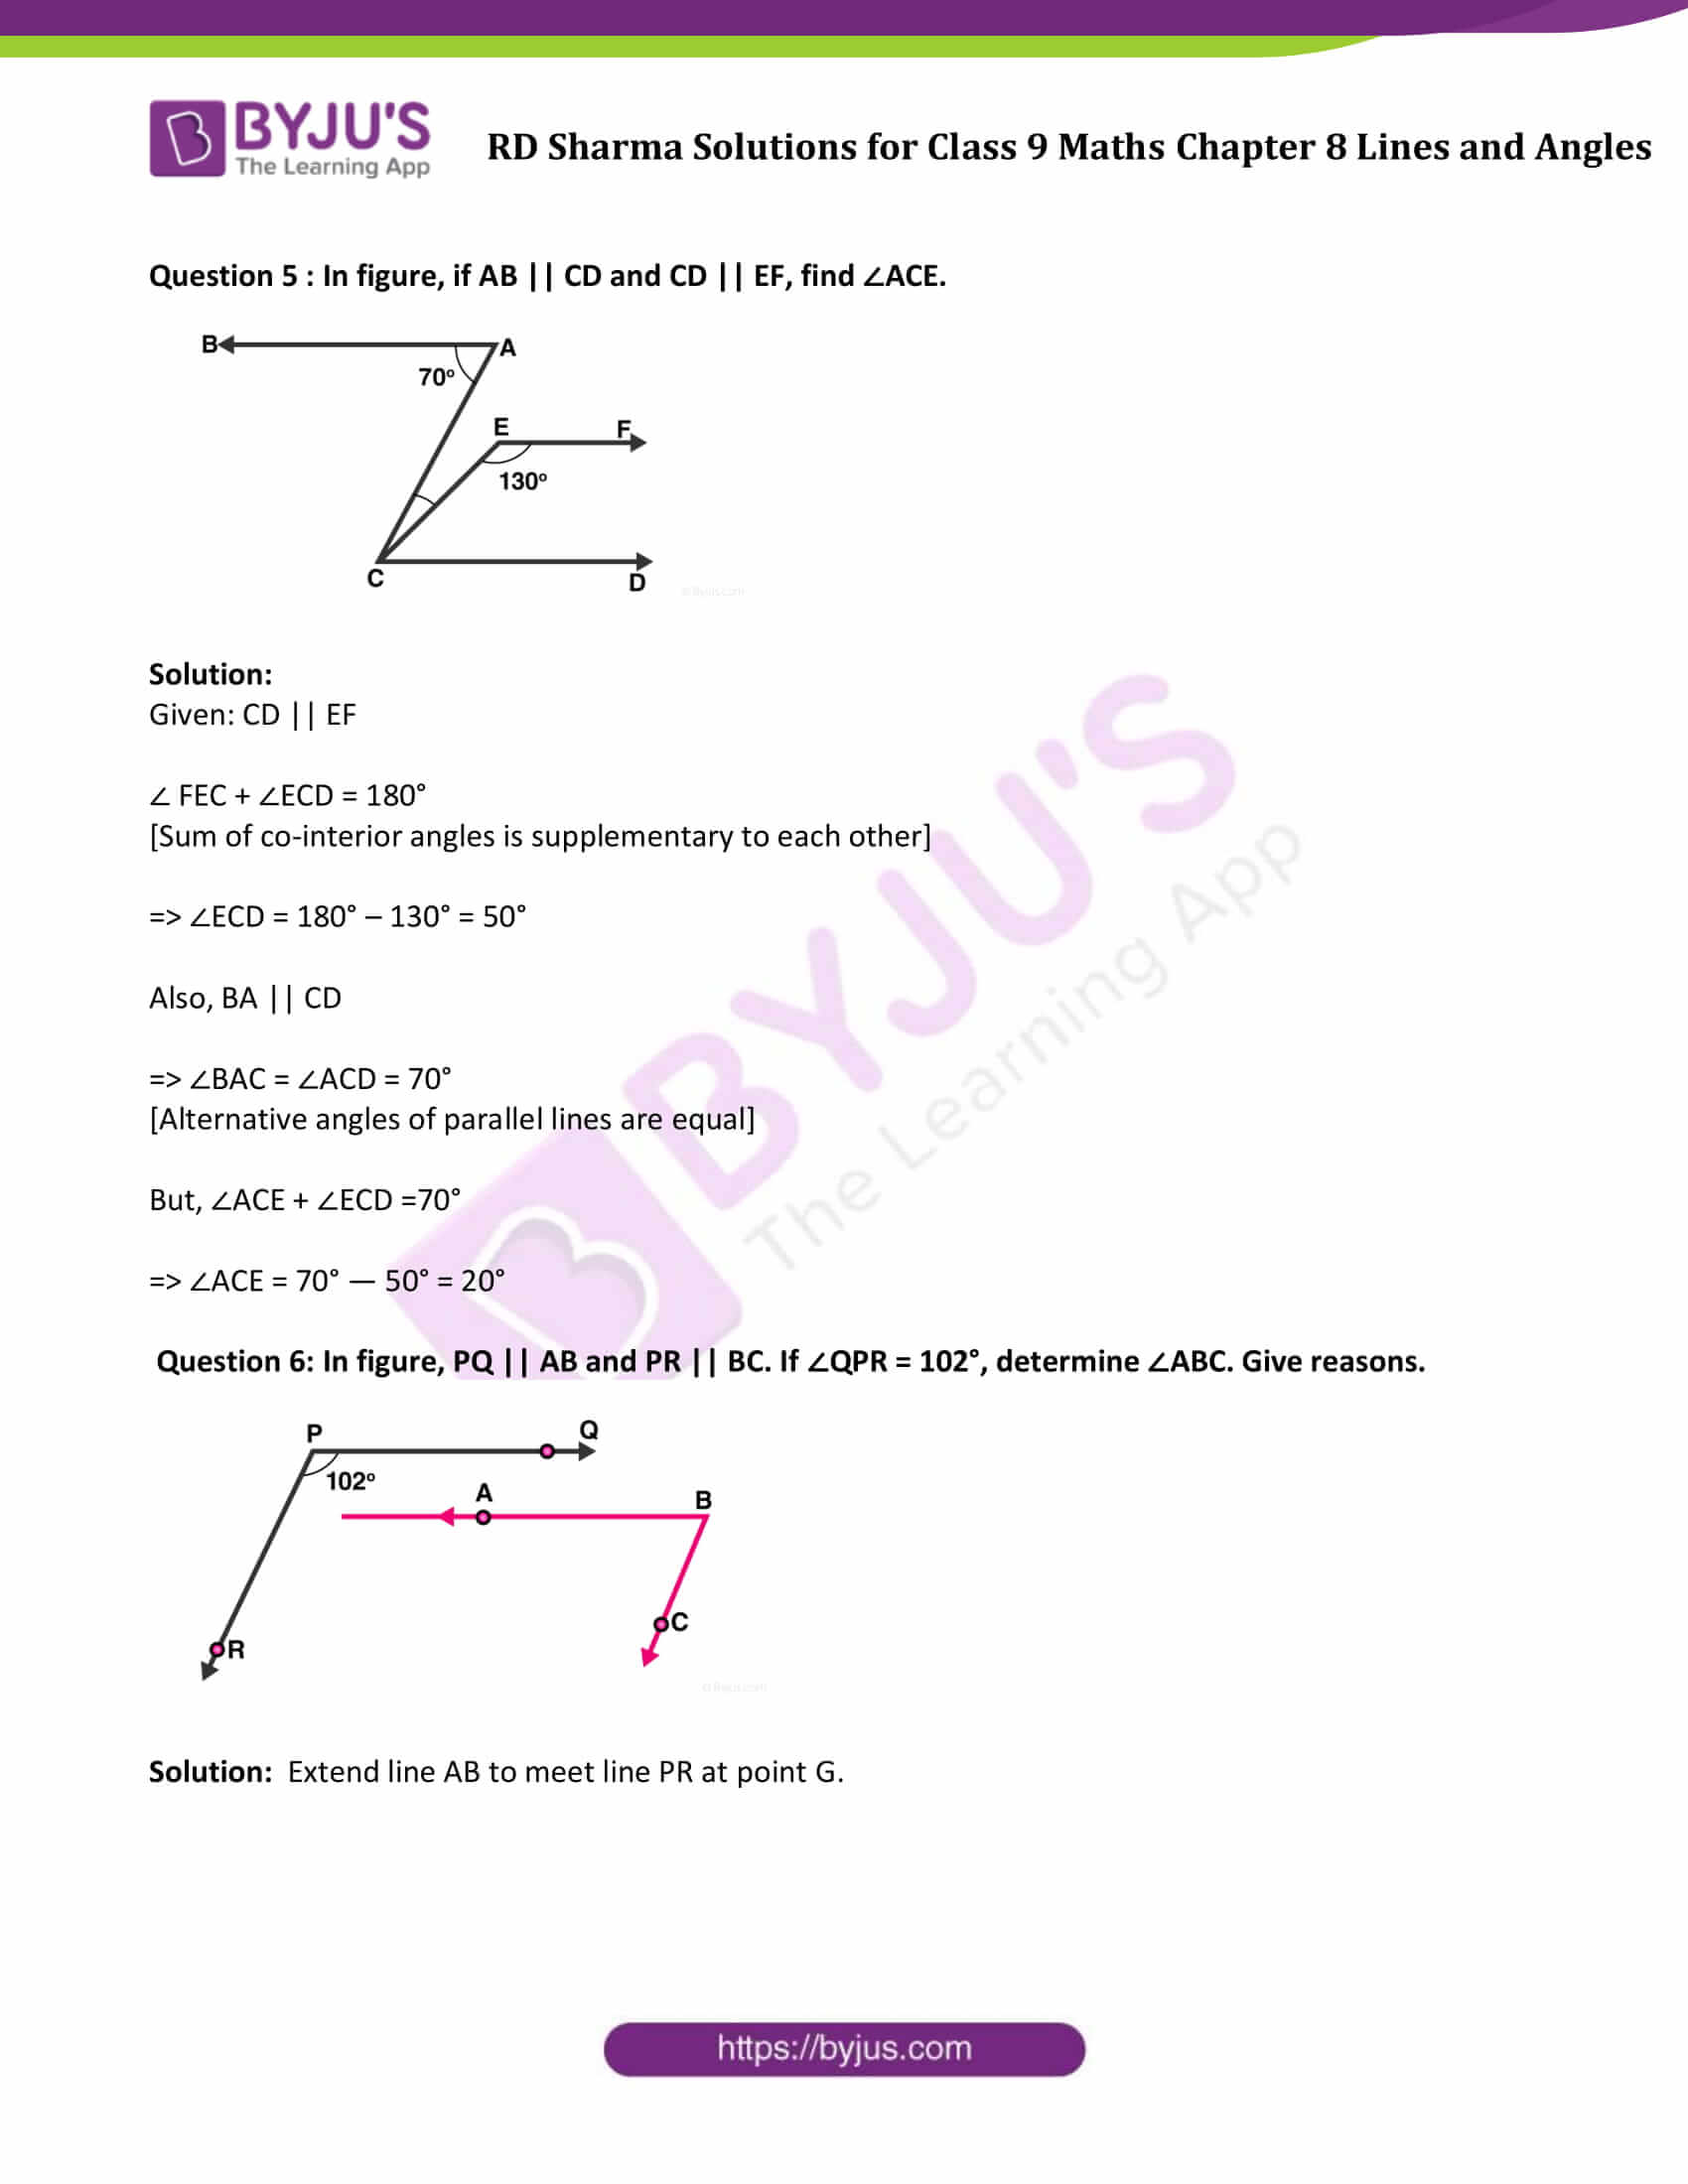 RD Sharma Solution class 9 Maths Chapter 8 Lines and Angles 20